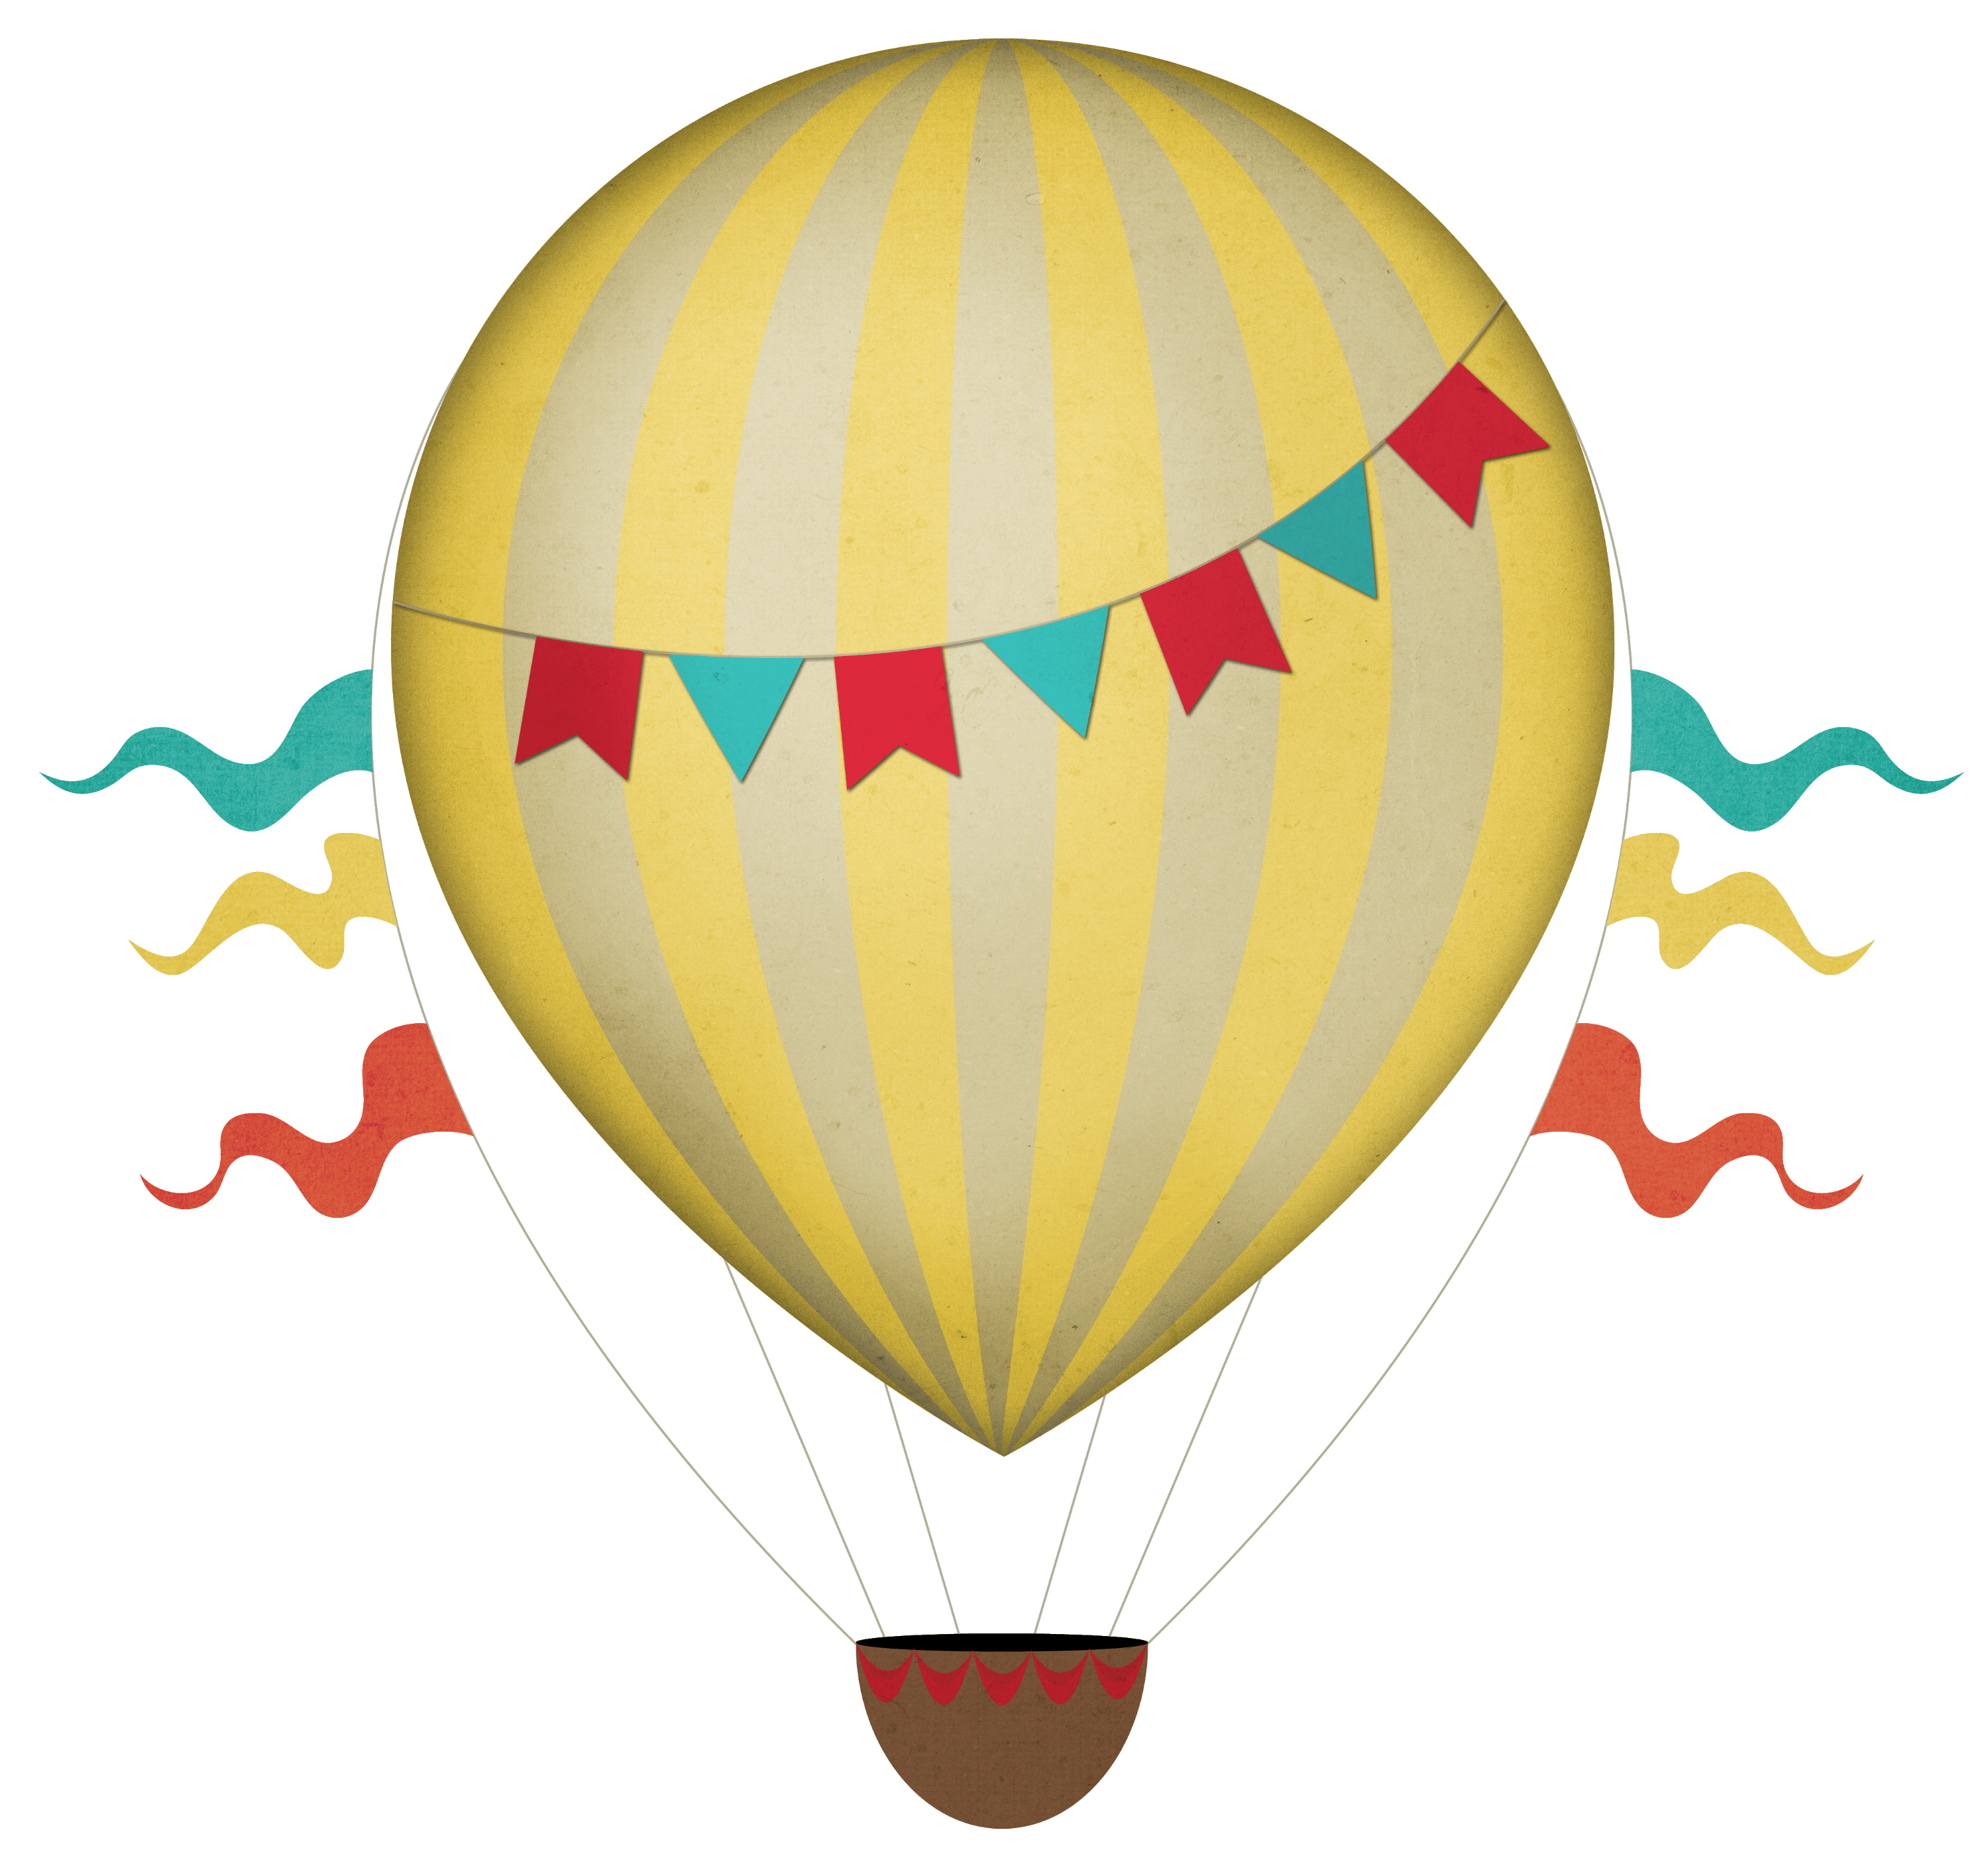 Maatwerk Kasten additionally Waterwoning likewise Sheet P 2 Plumbing Electrical furthermore Vintage Hot Air Balloon Clipart furthermore Disco Lights Transparent Background. on project ng